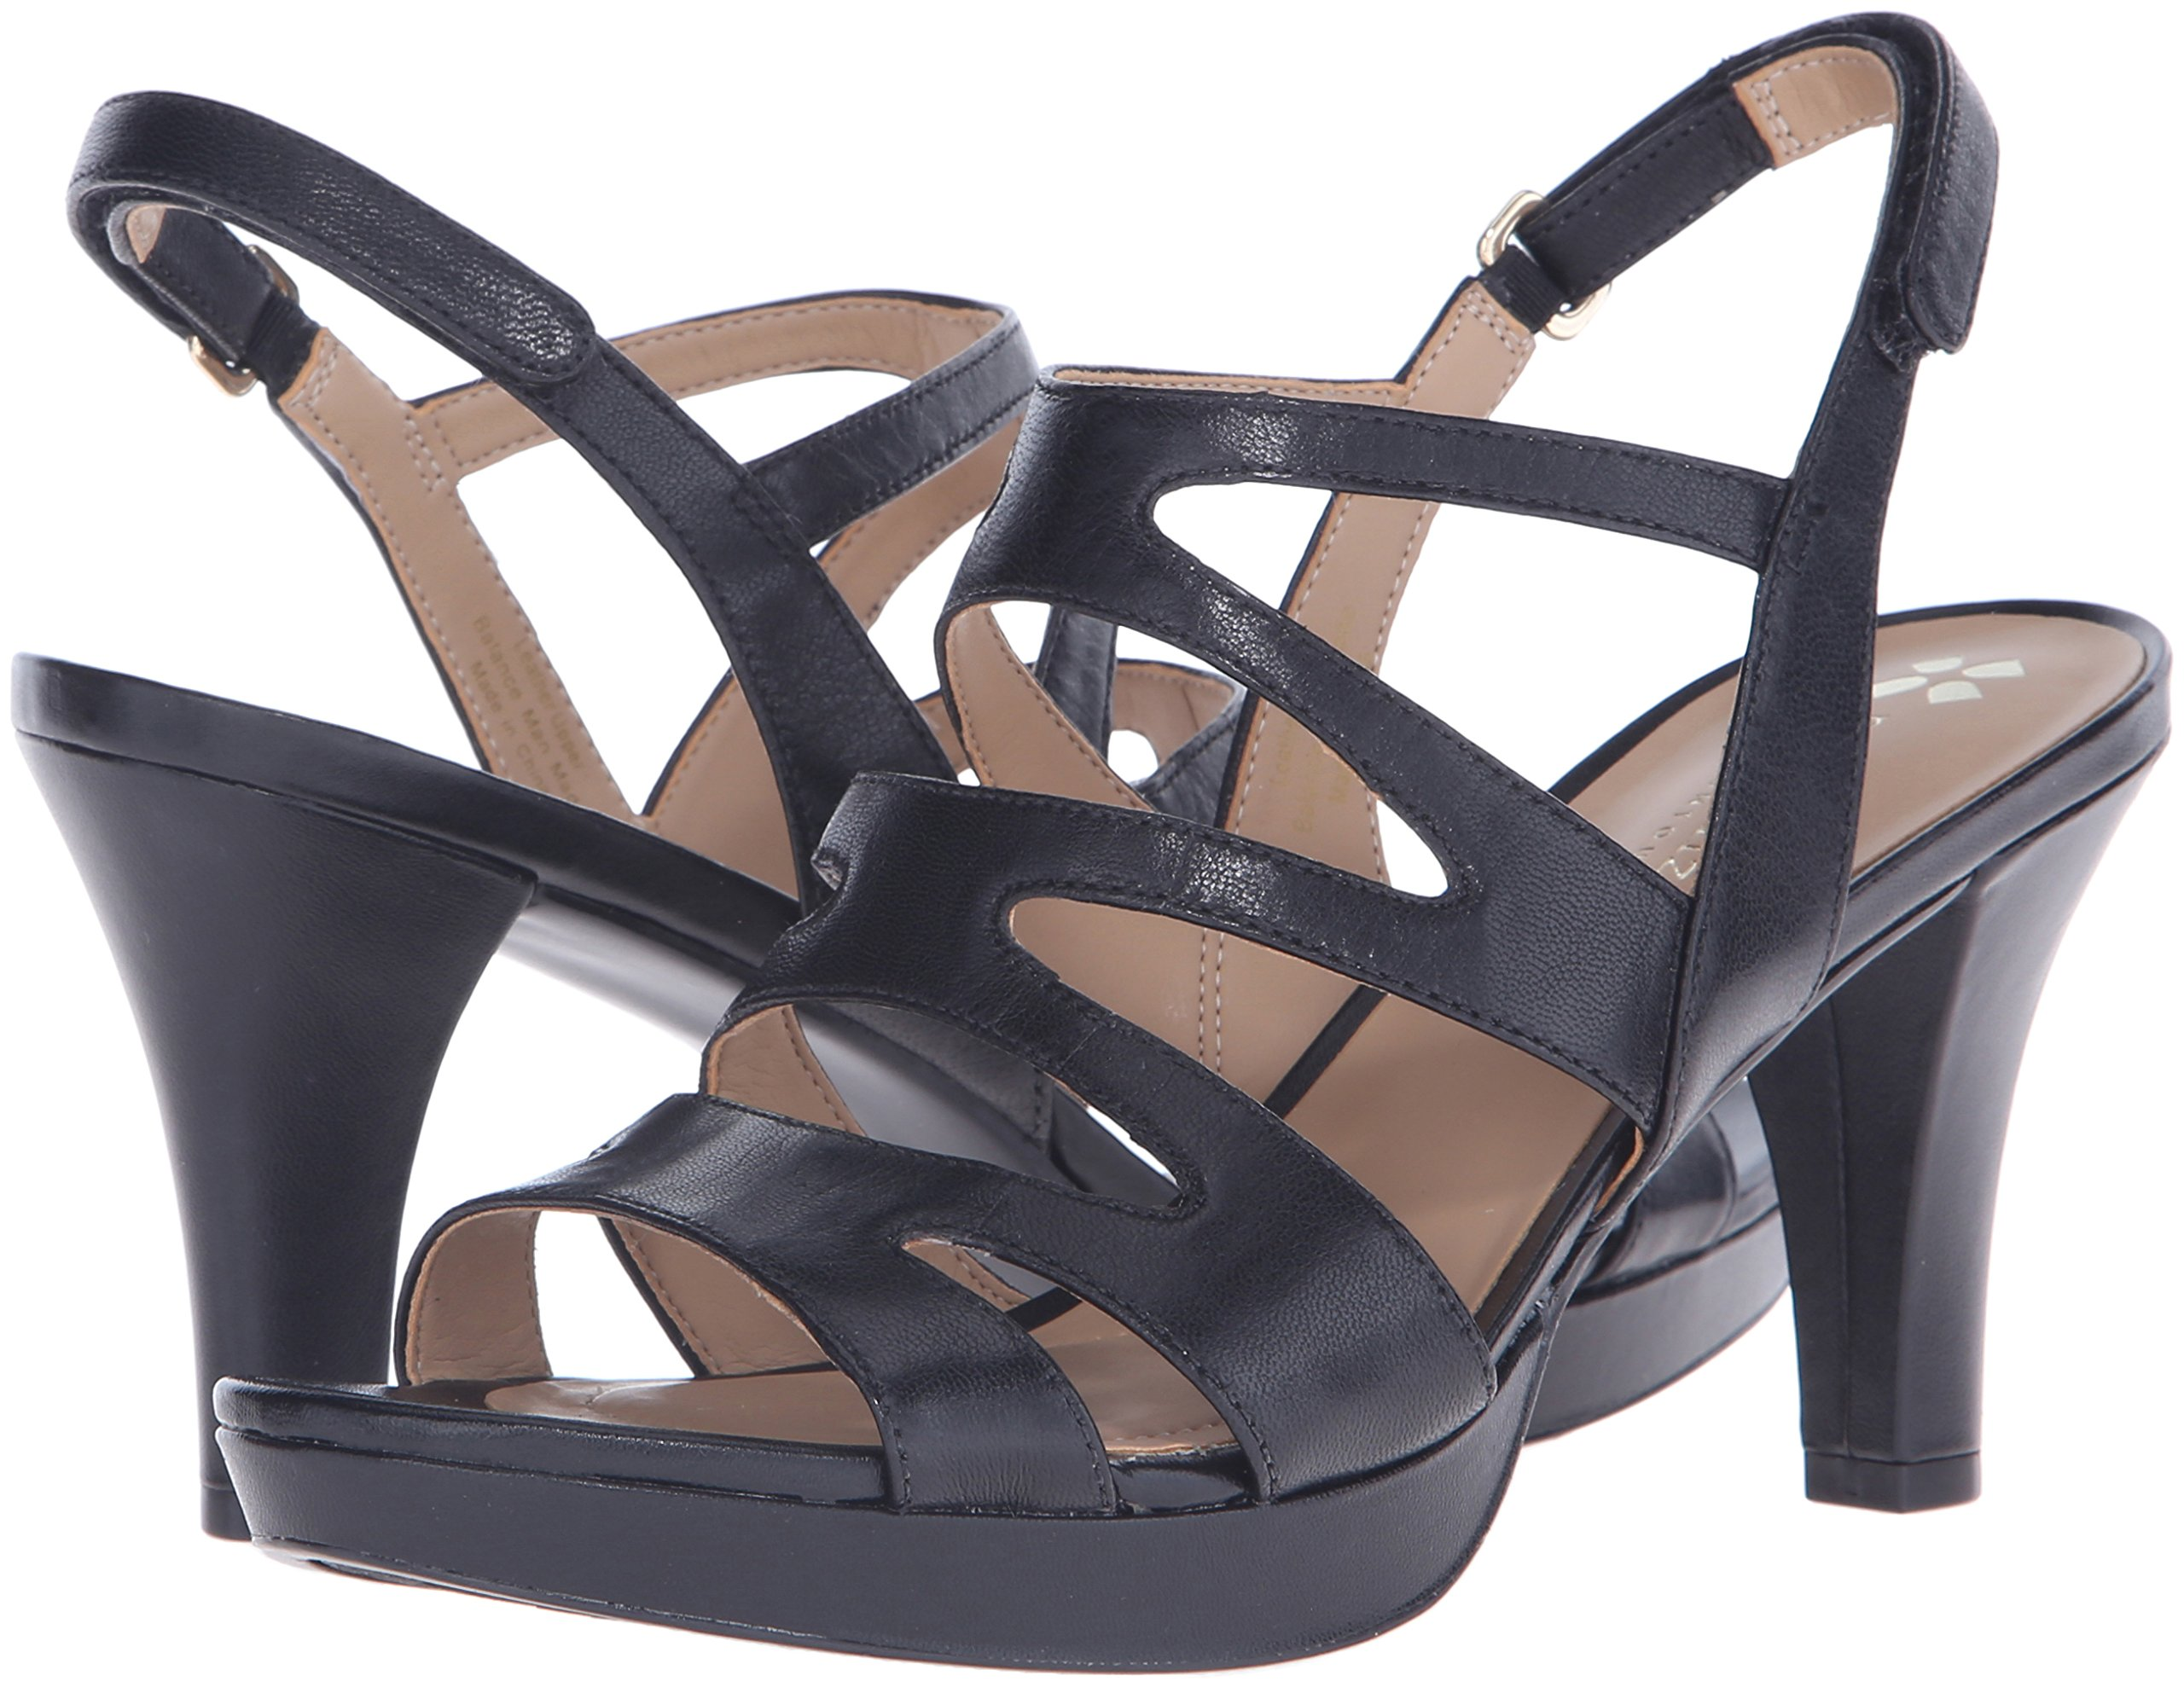 Naturalizer Women's Pressley Platform Dress Sandal, Black, 7 W US by Naturalizer (Image #6)